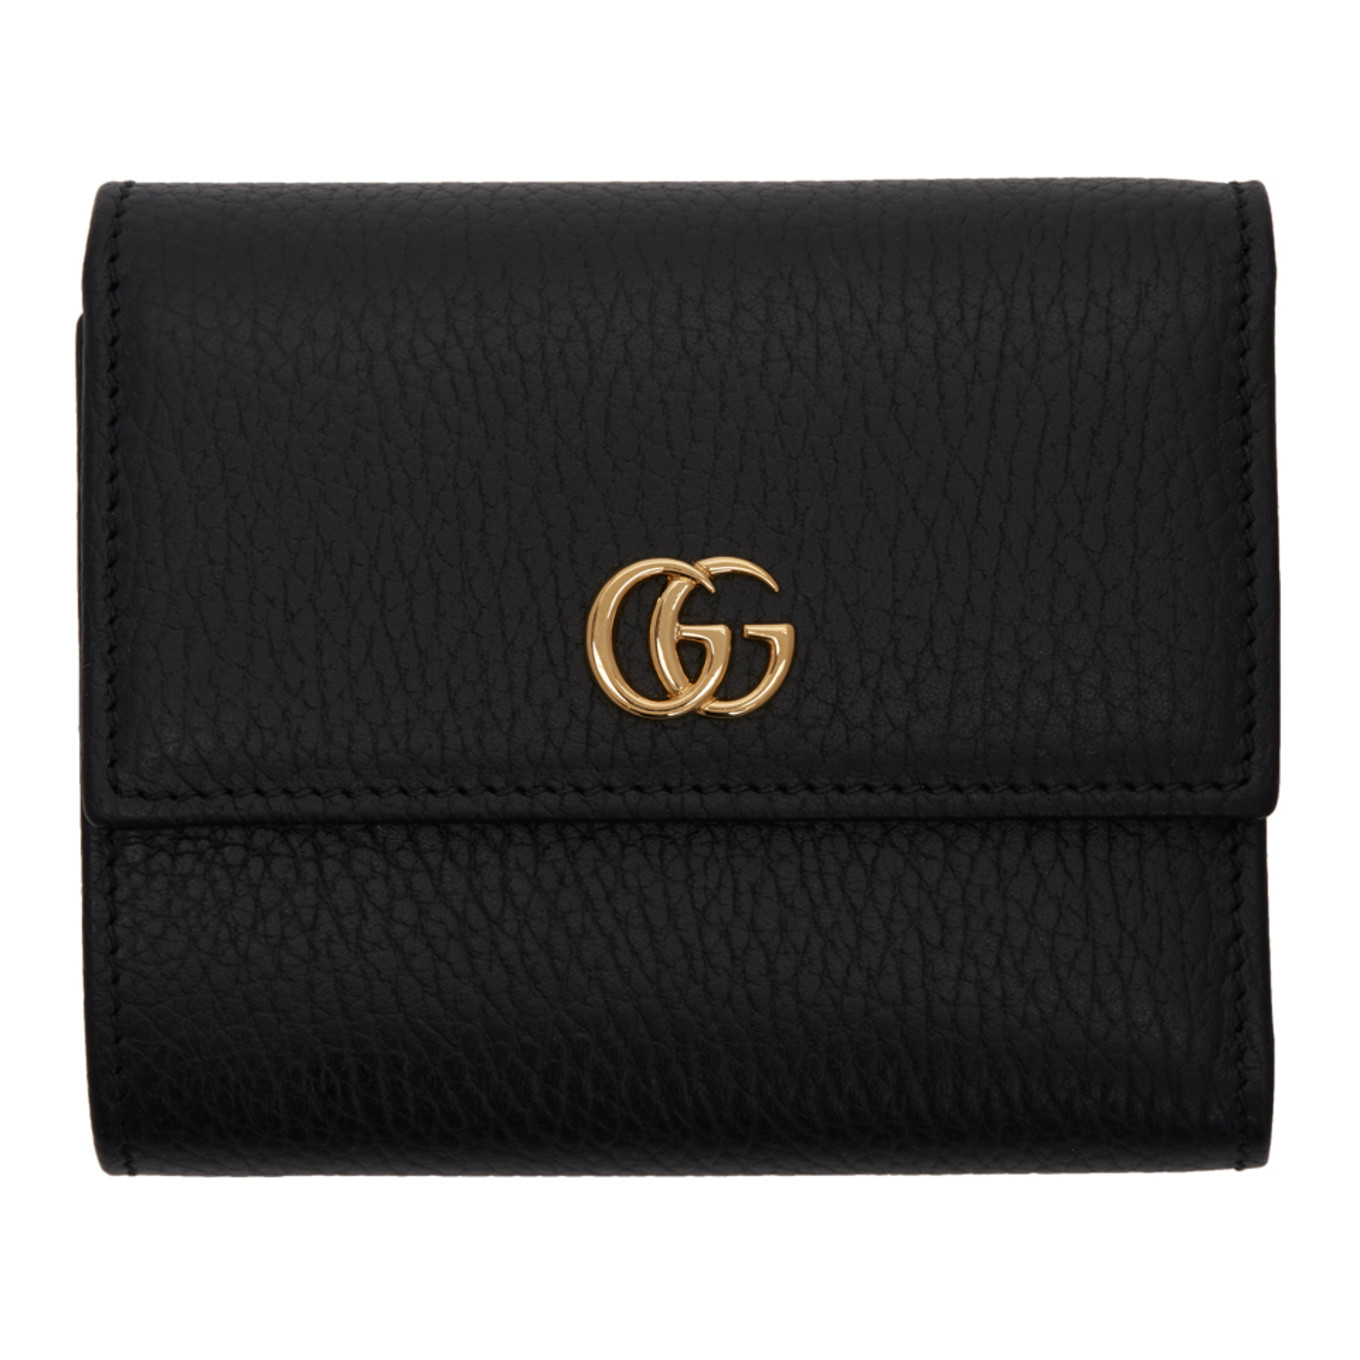 Black Small Gg Marmont Trifold Wallet by Gucci